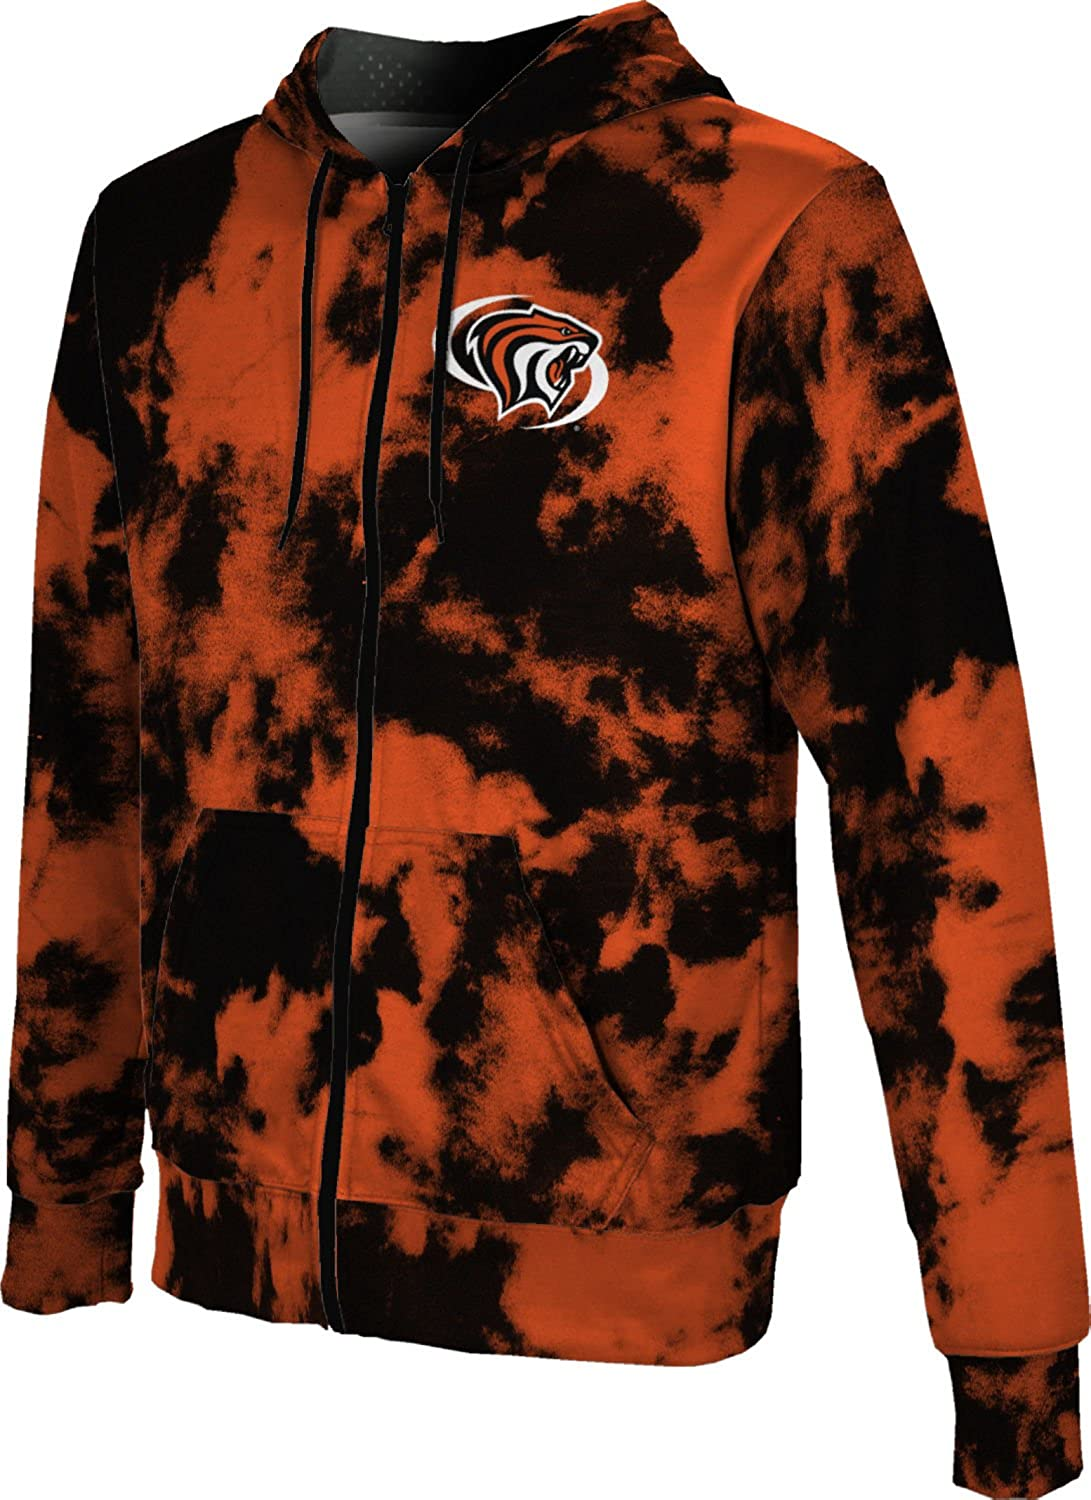 Grunge ProSphere University of The Pacific Boys Full Zip Hoodie